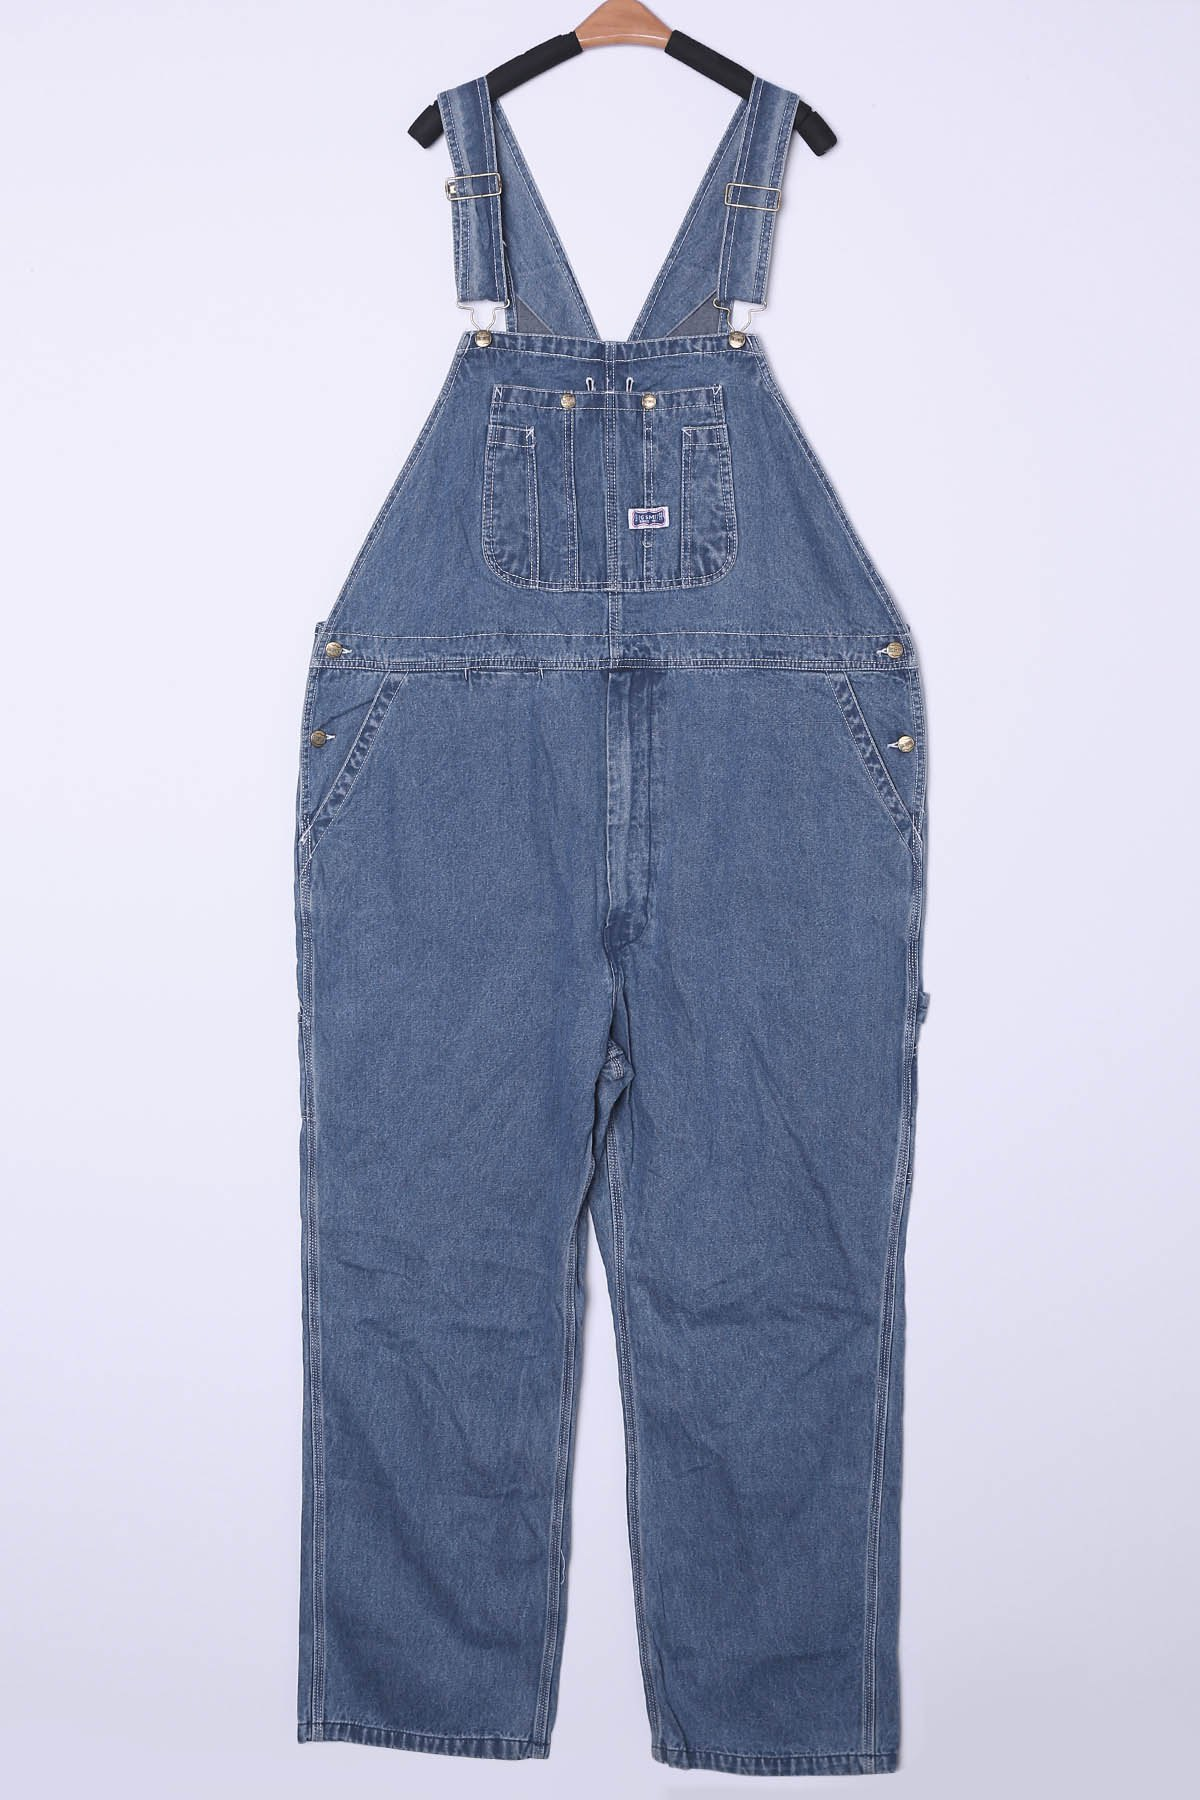 Loose Fit Plus Size Multi-Pocket Bleach Wash Straight Leg Men's Denim Overalls